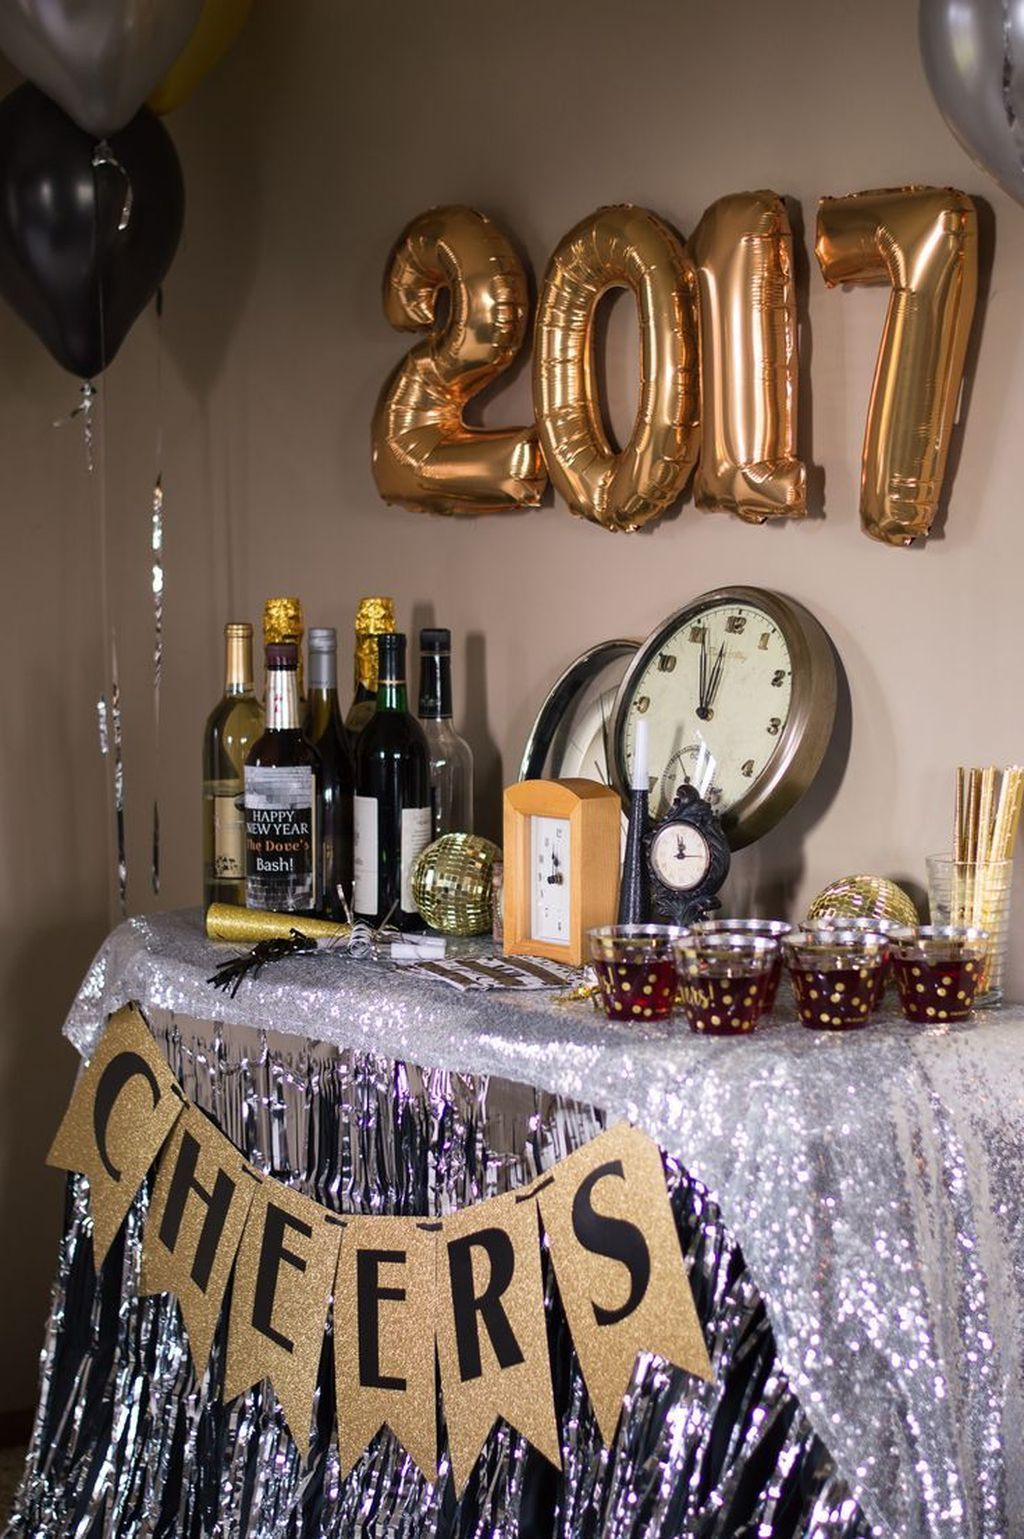 20 Fabulous New Years Eve Party Decoration Ideas Trenduhome New Year S Eve Party Themes New Years Eve Decorations New Years Eve Party Ideas Decorations